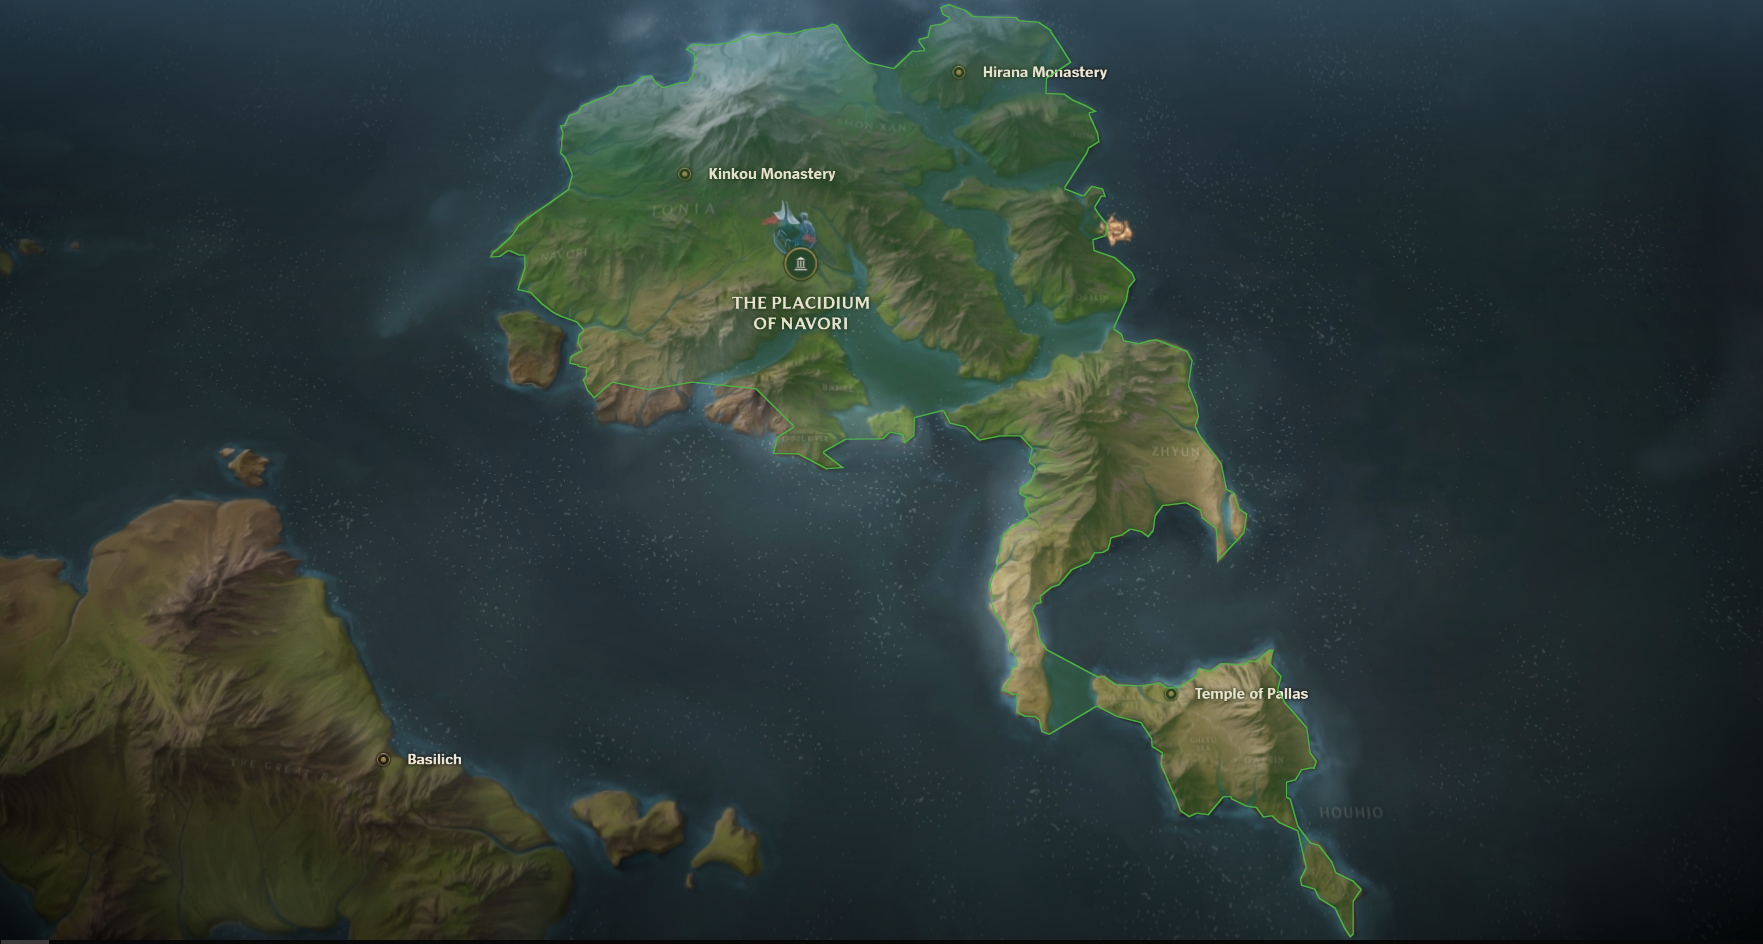 diablo 3 world map, pokemon mystery dungeon world map, lol map, concept art world map, treasure map, on runeterra map